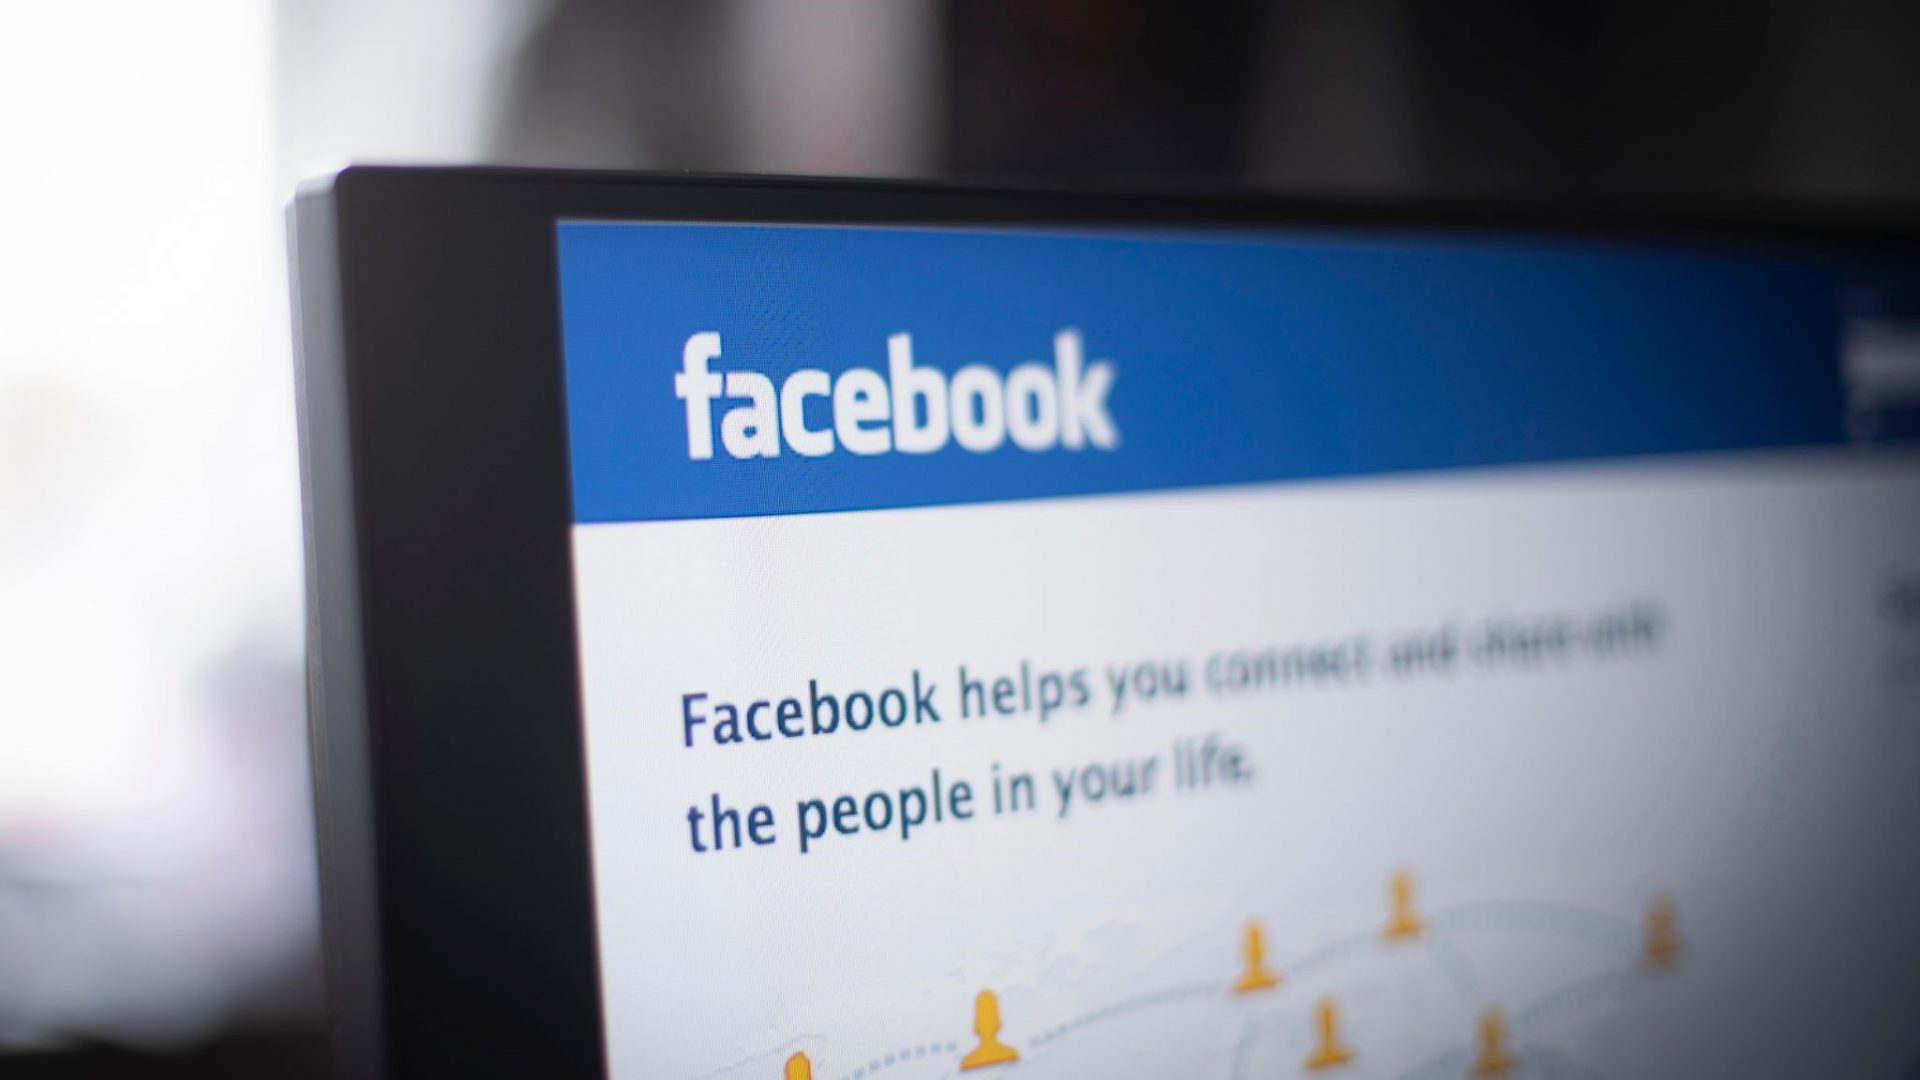 Facebook Data Breach – 533 Million Users Compromised